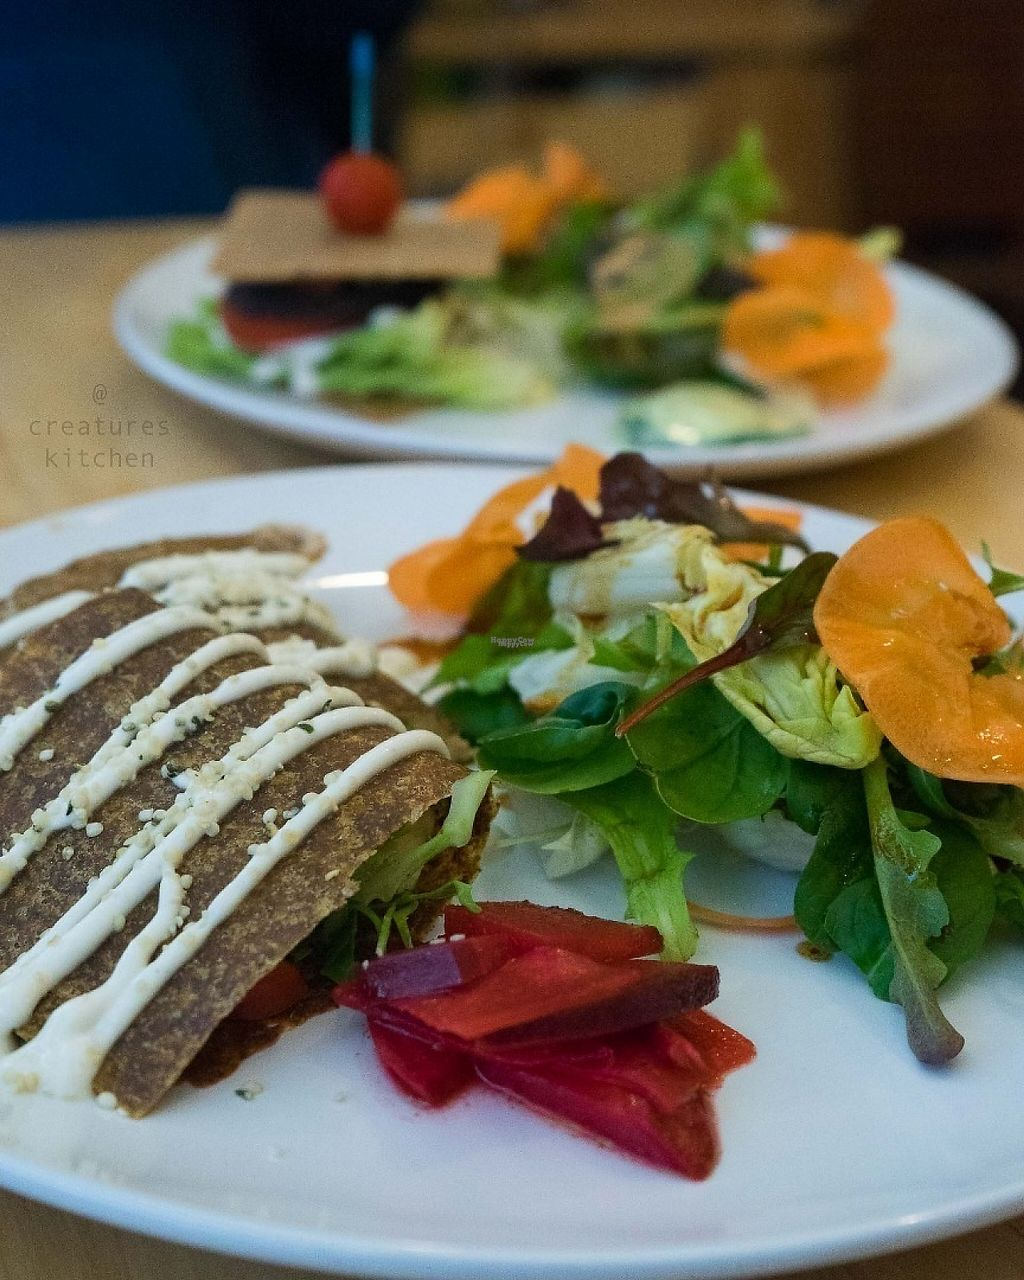 """Photo of Raw8 Cafe  by <a href=""""/members/profile/EmmaCebuliak"""">EmmaCebuliak</a> <br/>Raw quesadillas with salad, and the raw burger sandwich in the background.  <br/> January 27, 2017  - <a href='/contact/abuse/image/30371/217772'>Report</a>"""